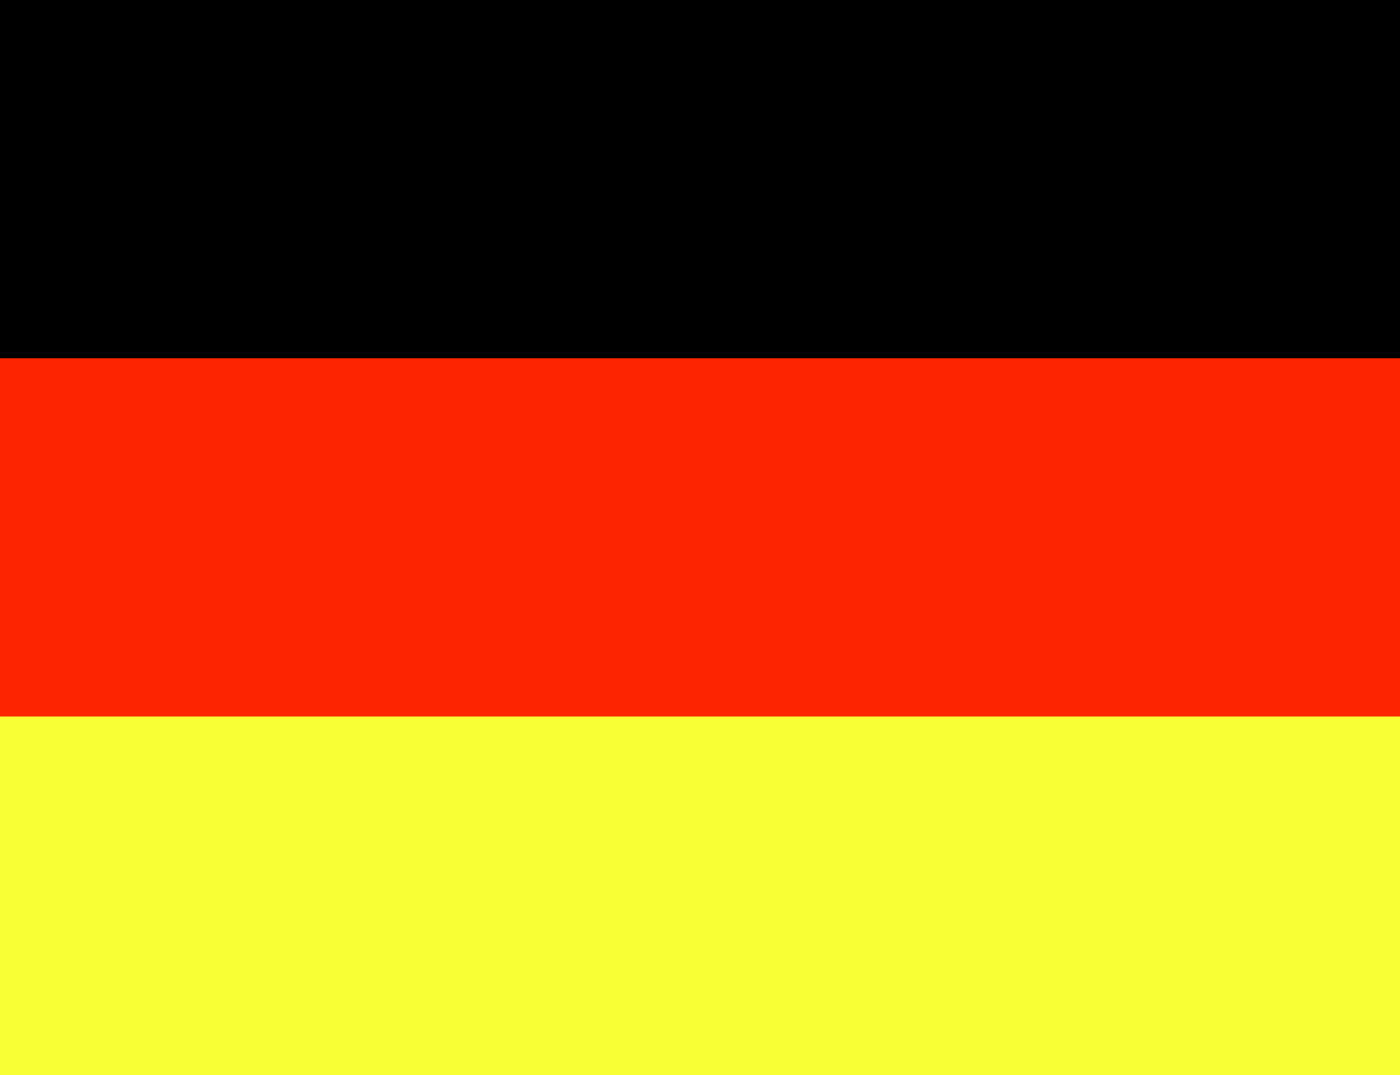 deutschland flag wallpaper - photo #22